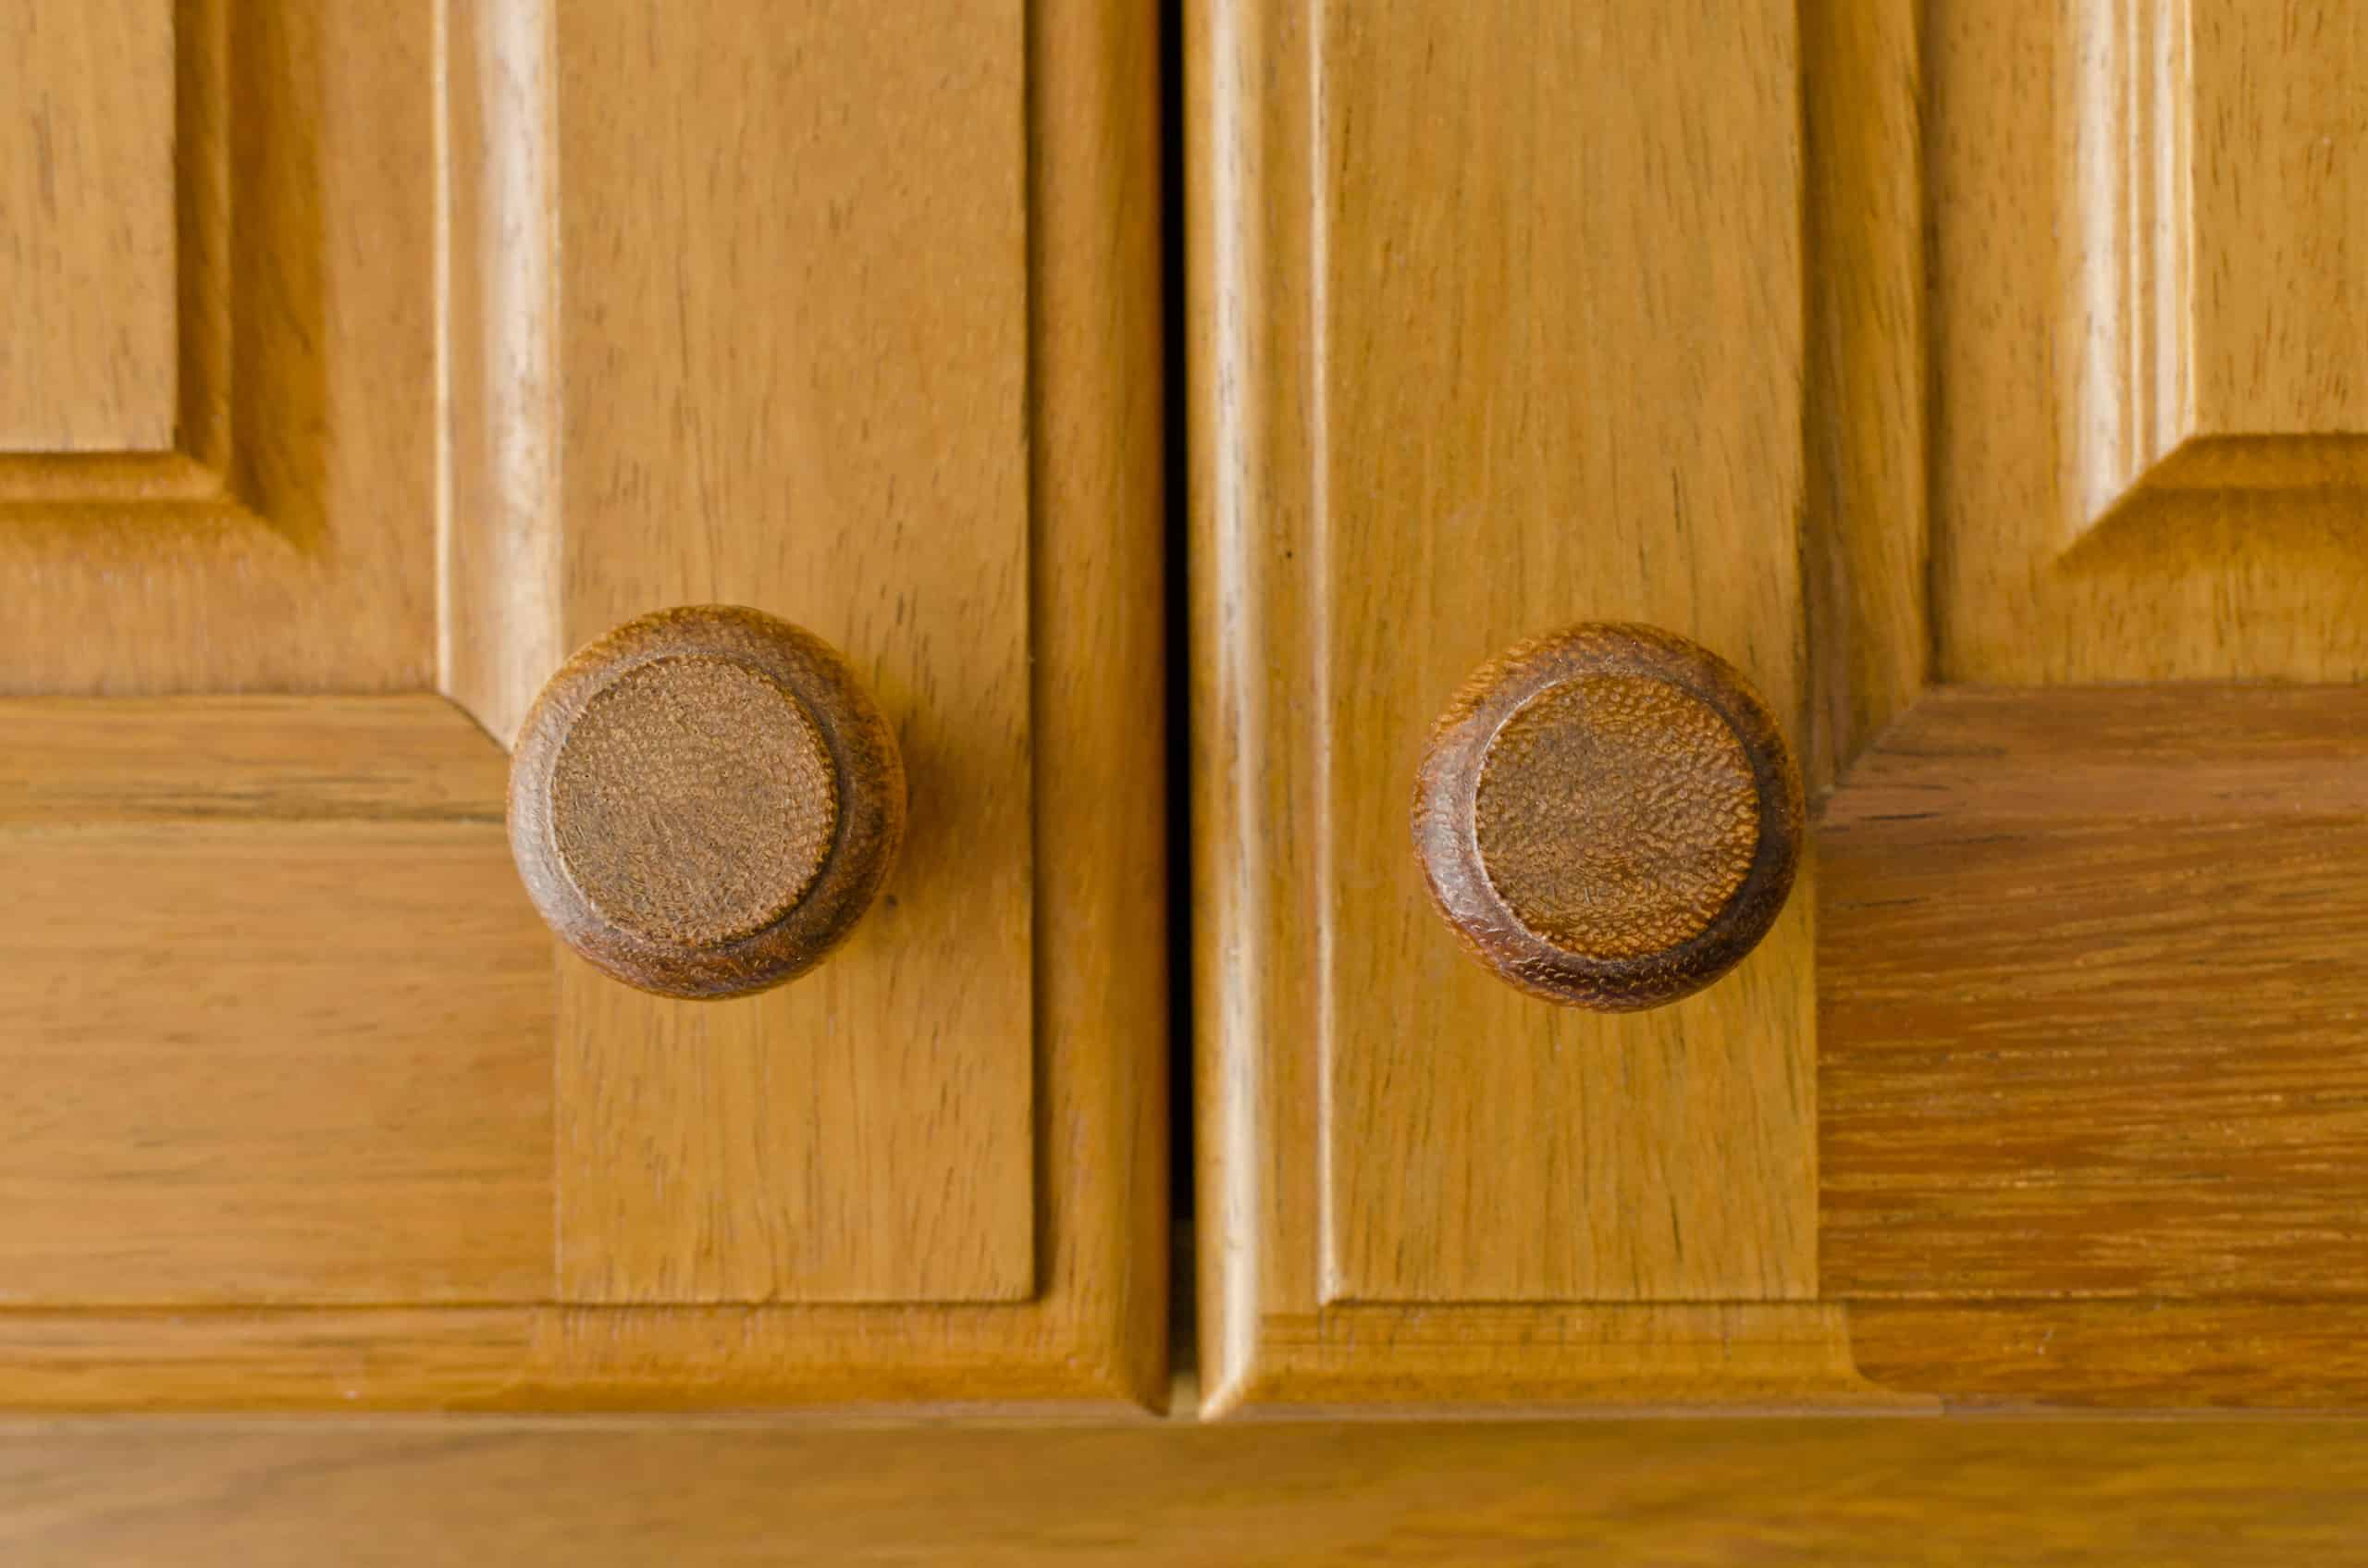 natural wood kitchen cabinet door wooden matched knobs